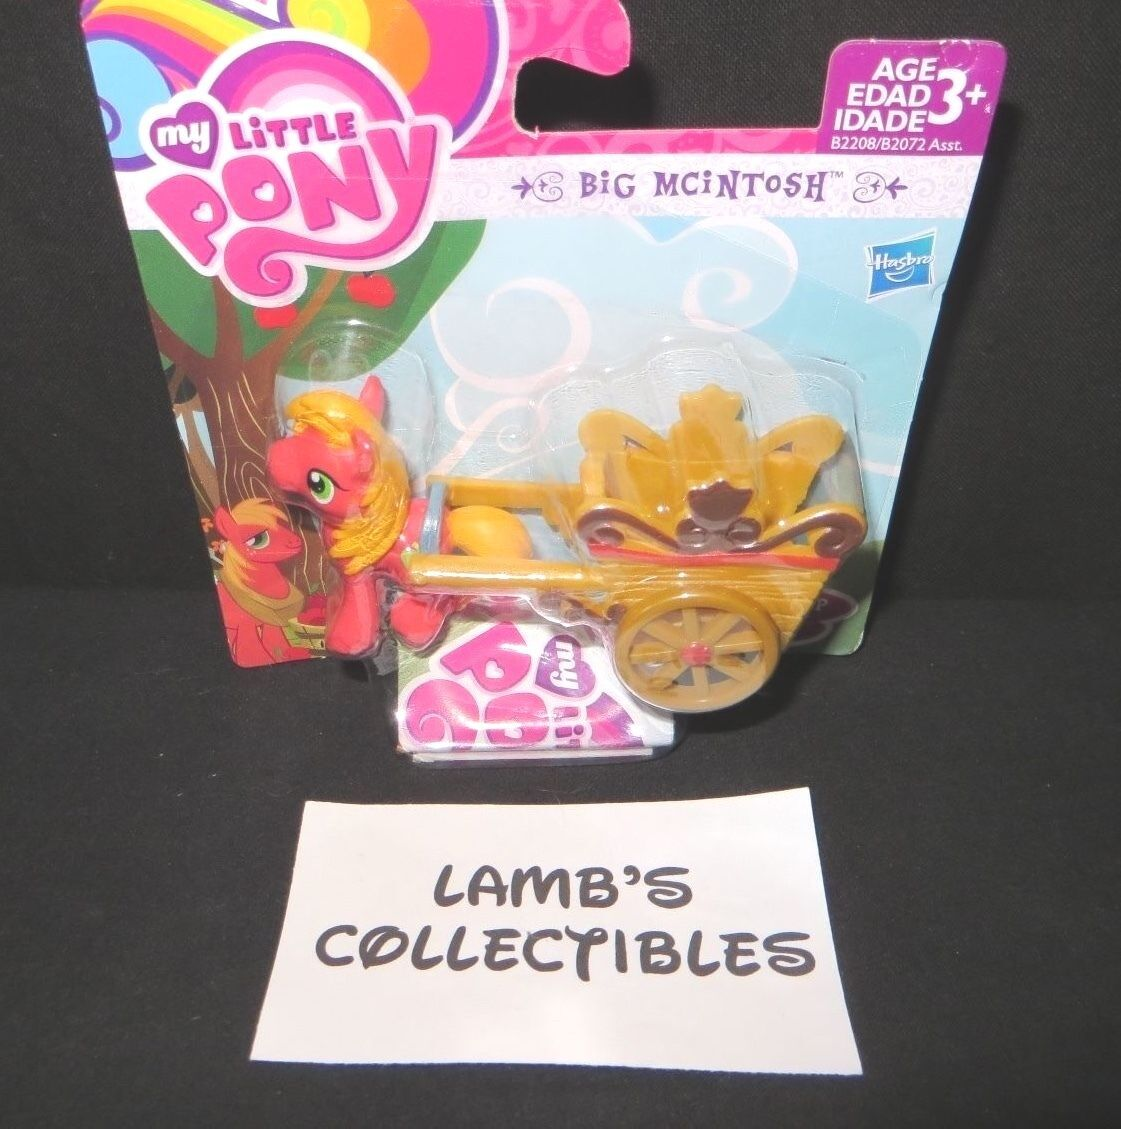 "Primary image for My Little Pony Friendship is Magic action figure pack Big McIntosh 2"" Hasbro Toy"